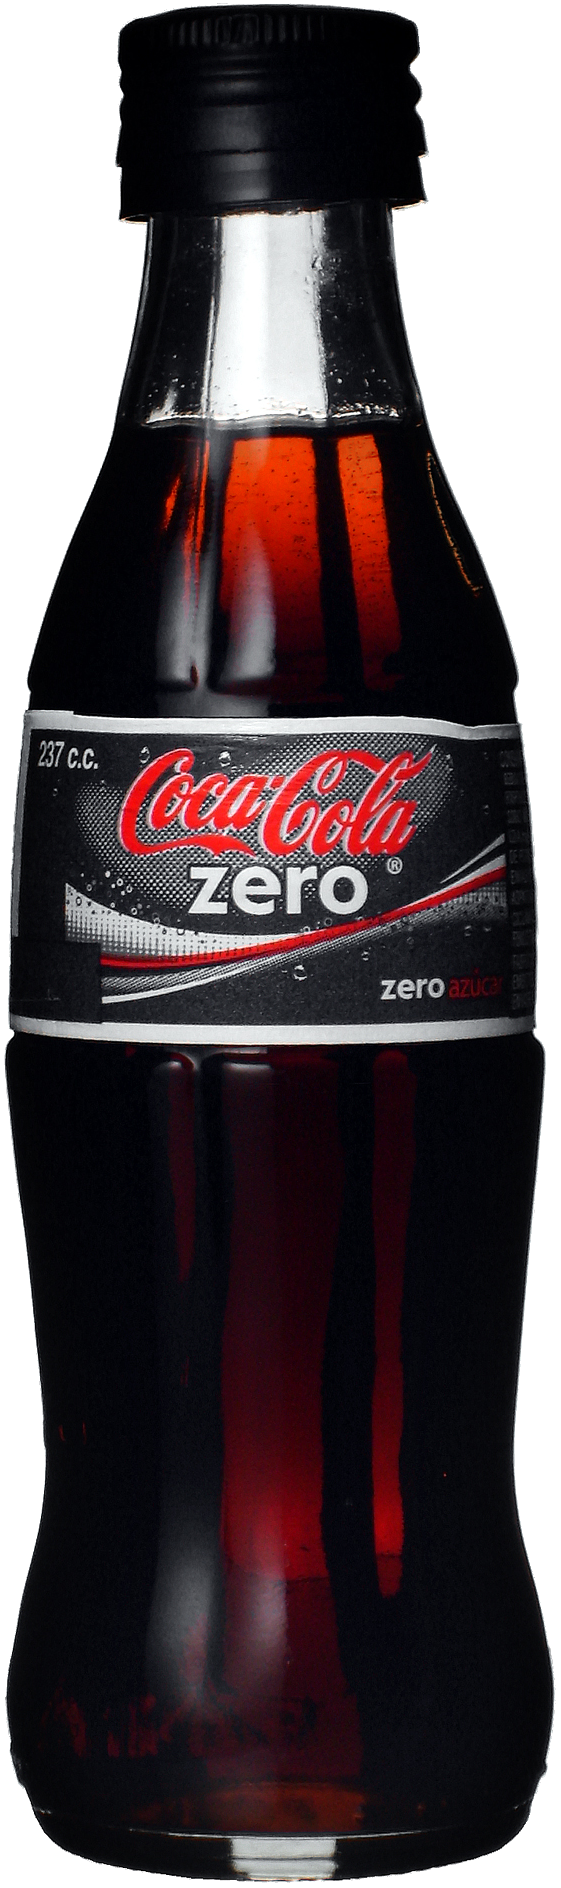 Coke Bottle Png File:coca Cola Zero Bottle.png